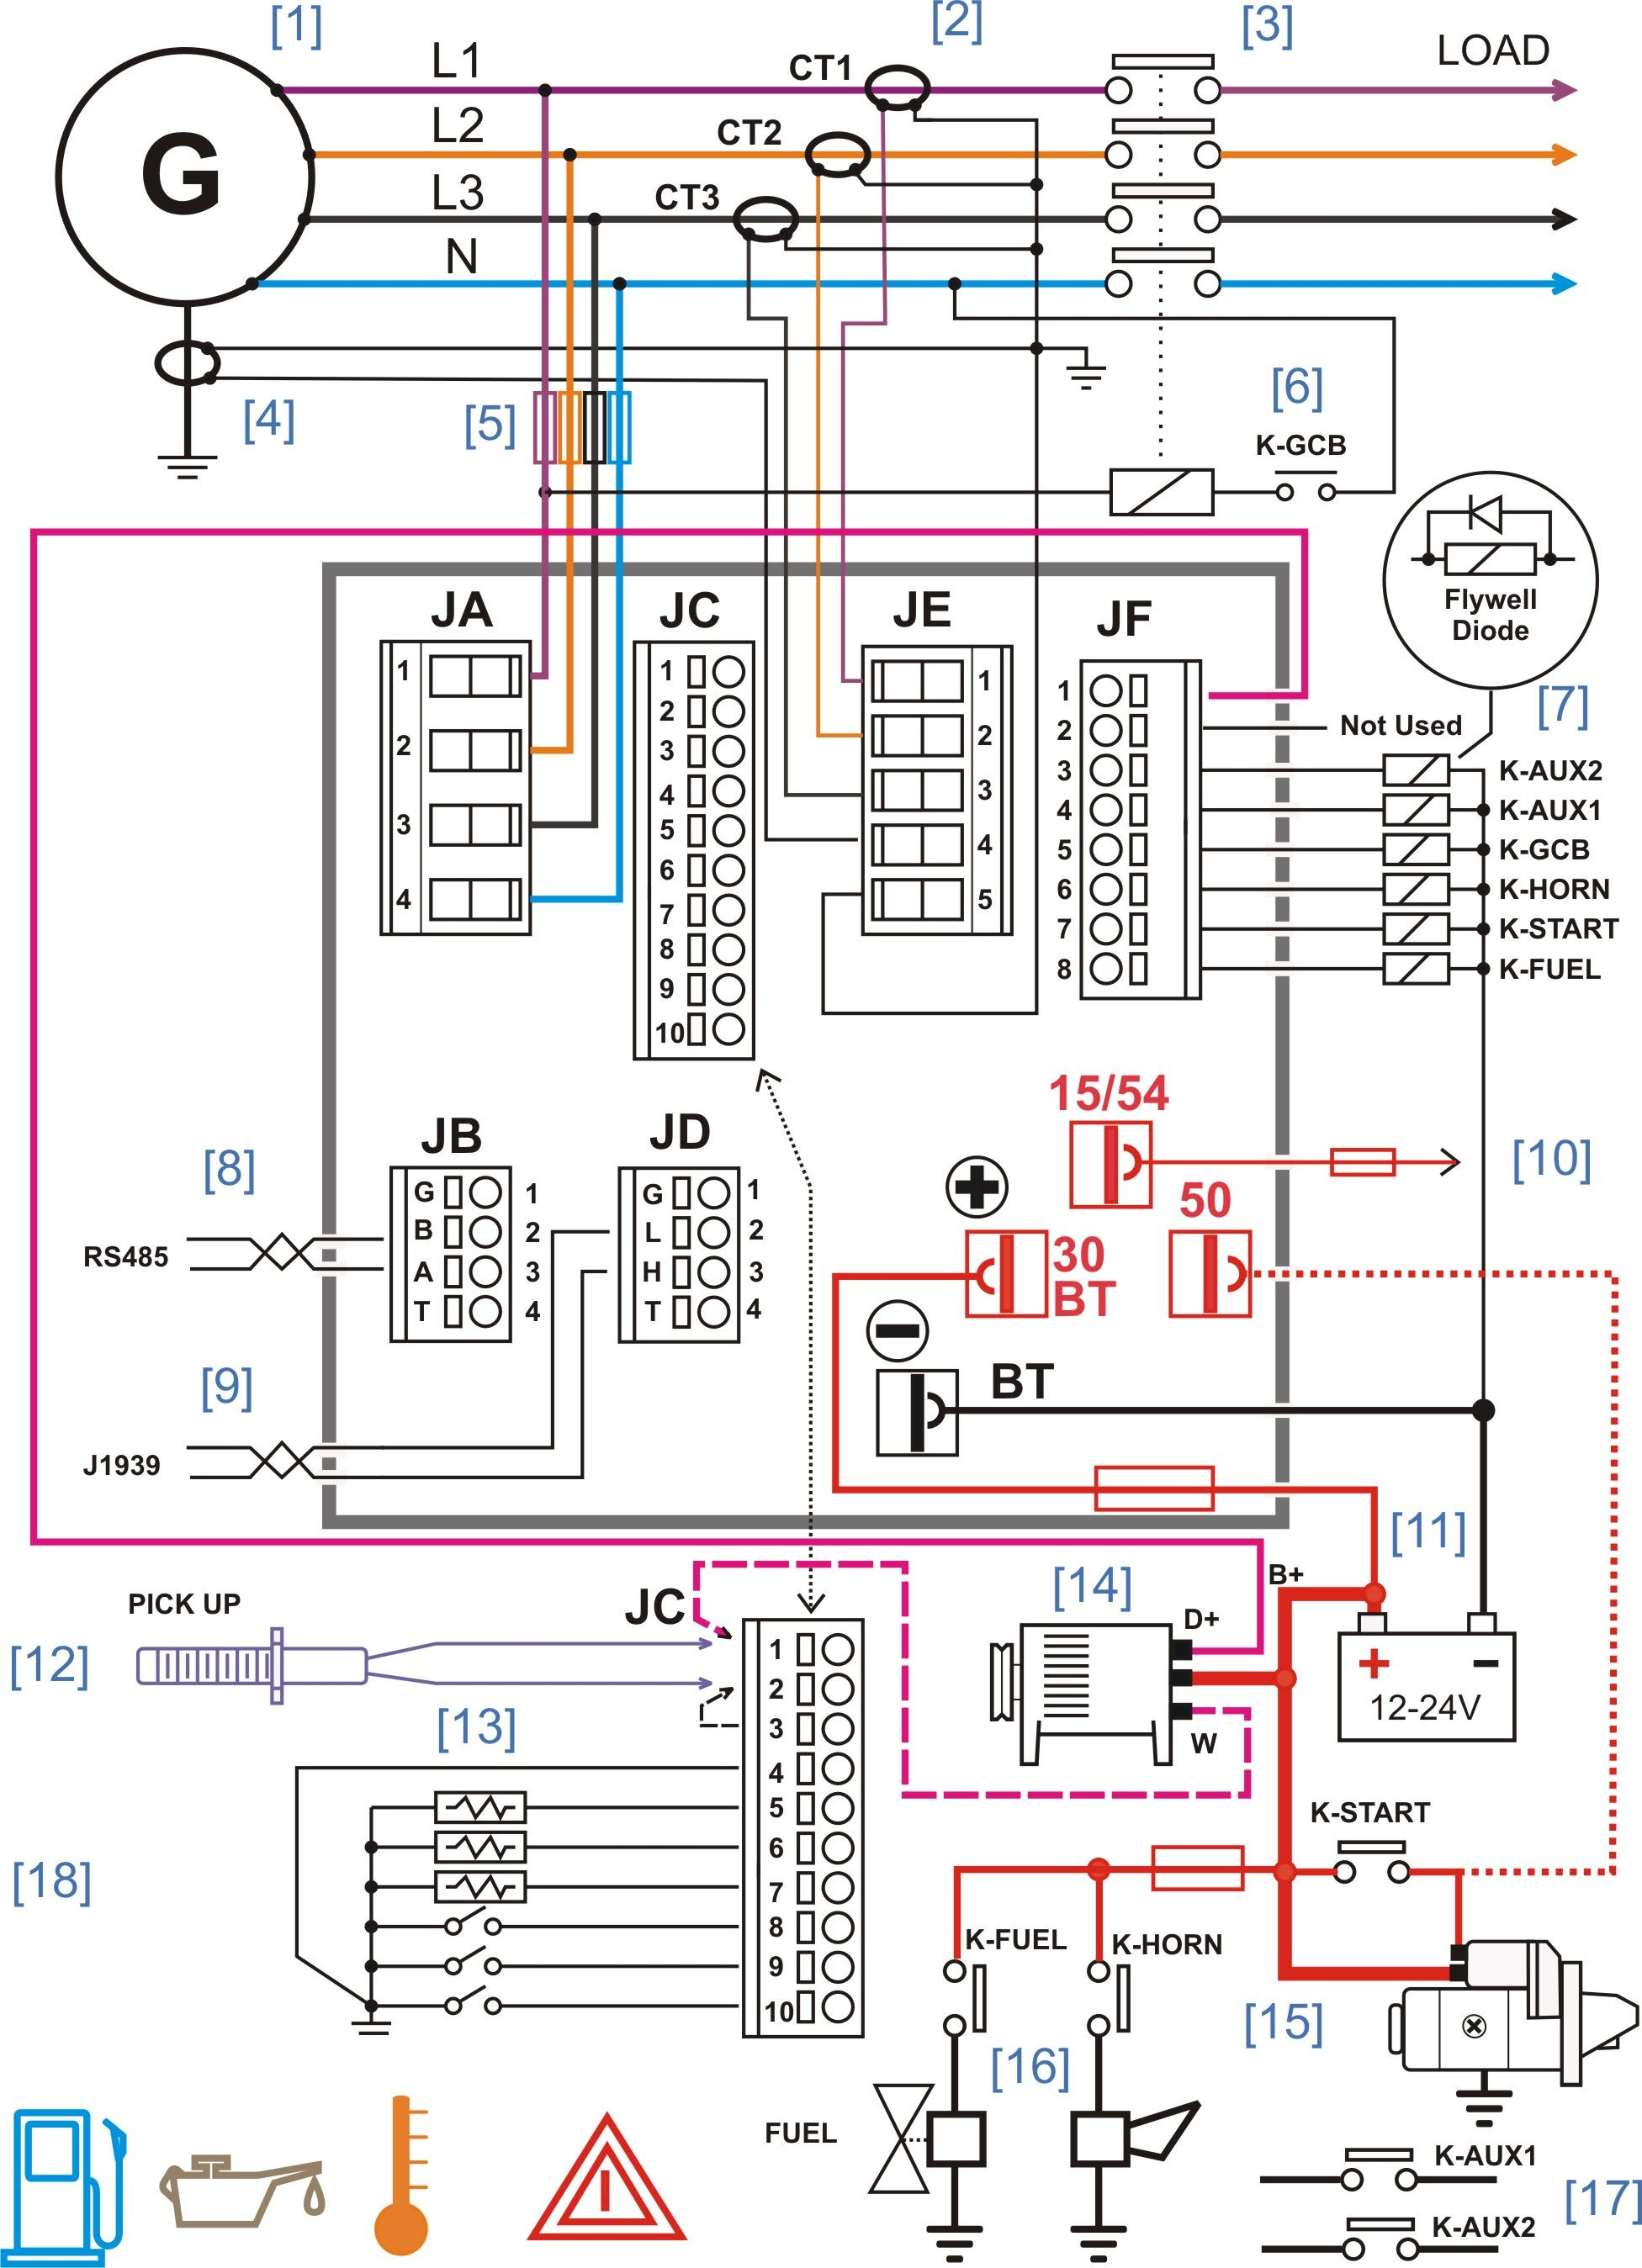 pin by diagram bacamajalah on tips references in 2019 generator transfer switch wiring diagram wiring diagrams for generators wiring